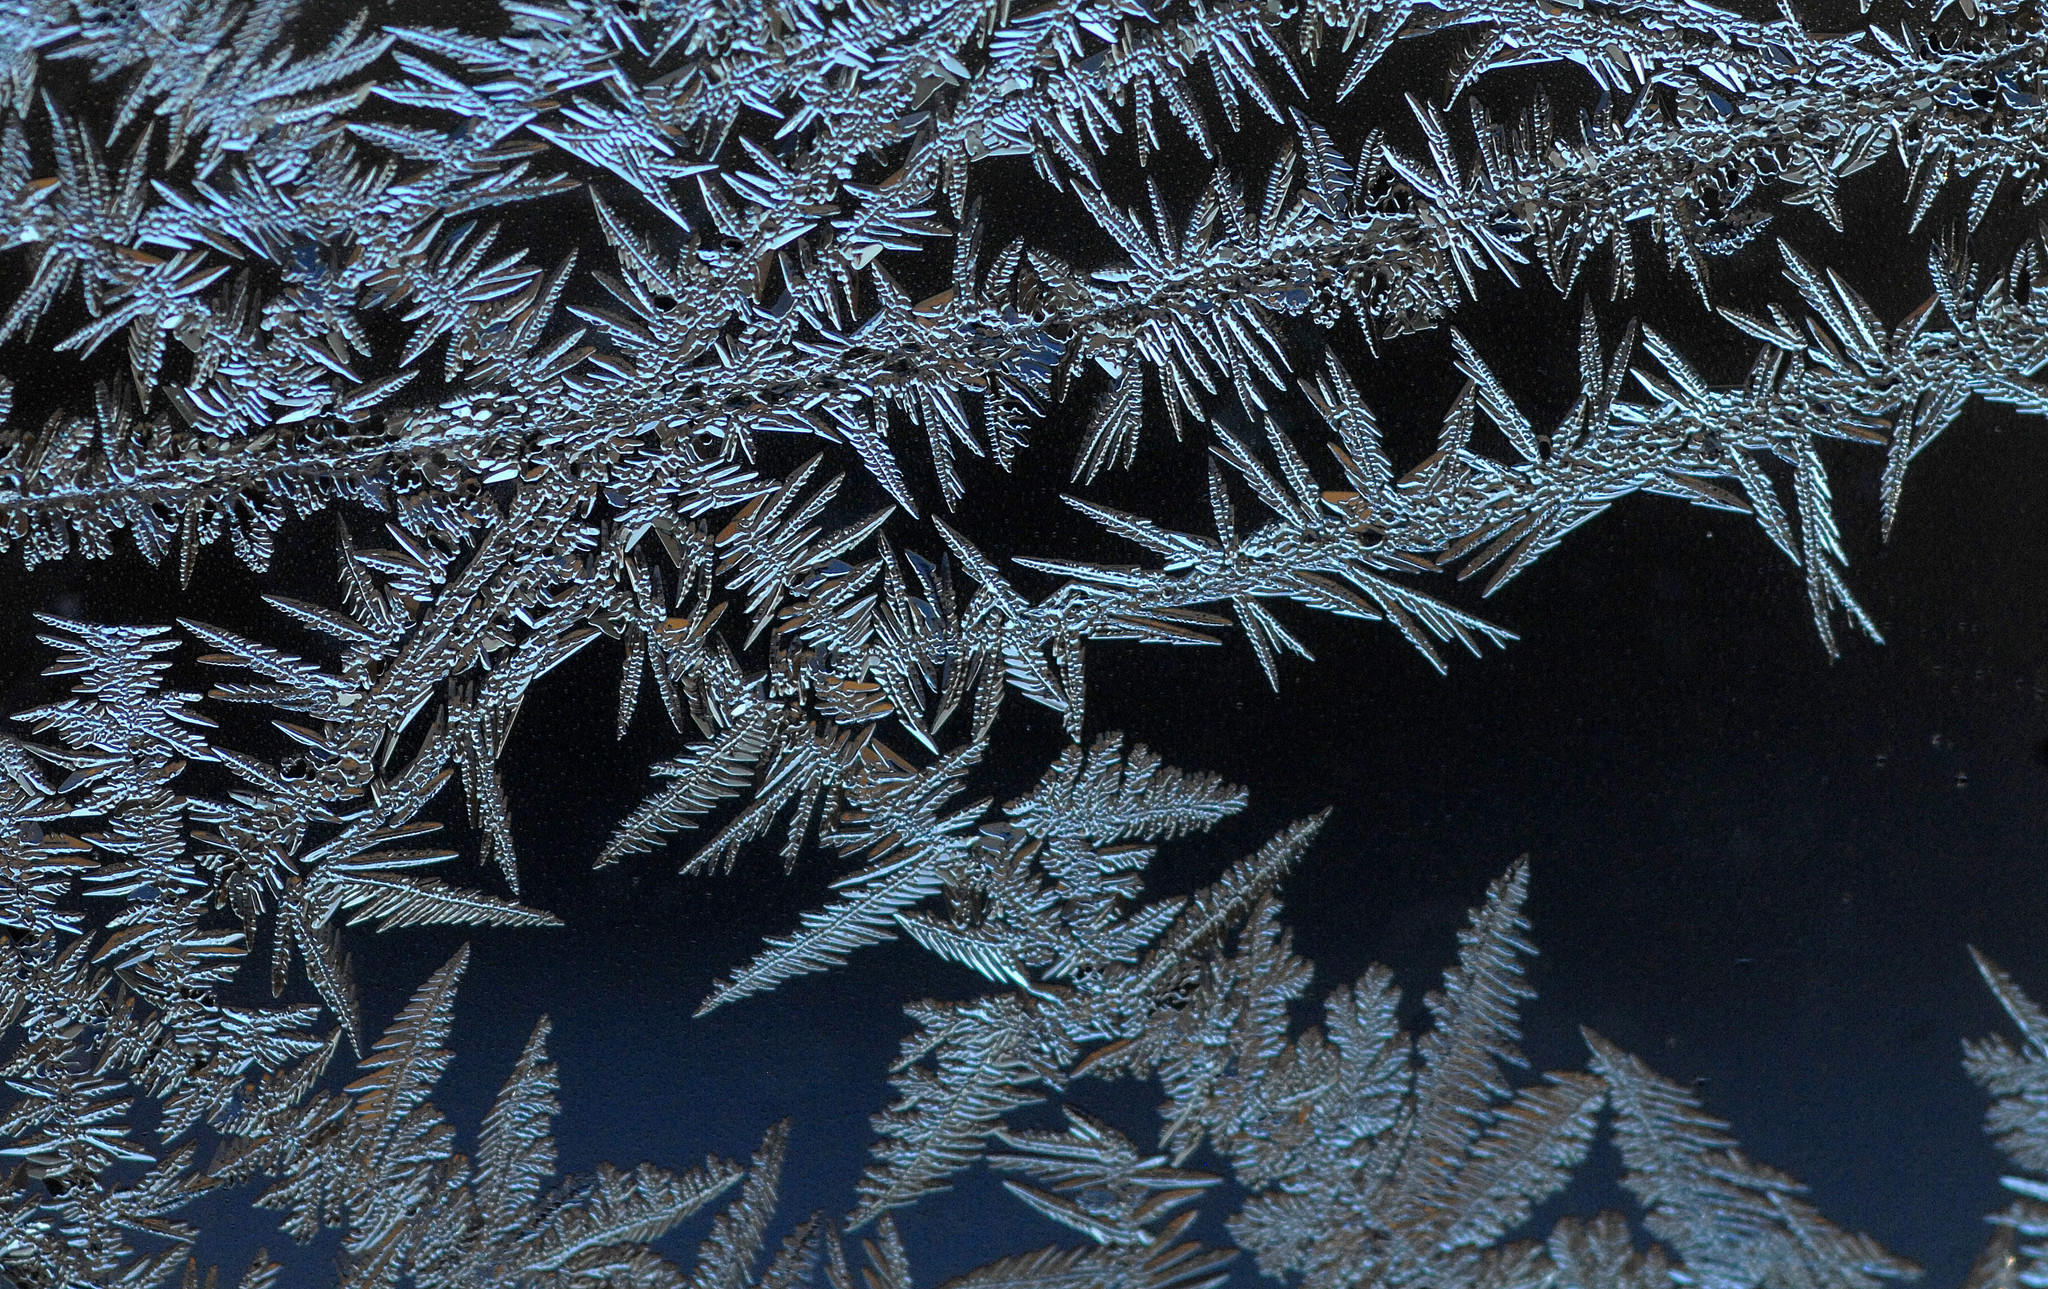 Ice crystals are seen on a window on another cold February morning in Baltimore.